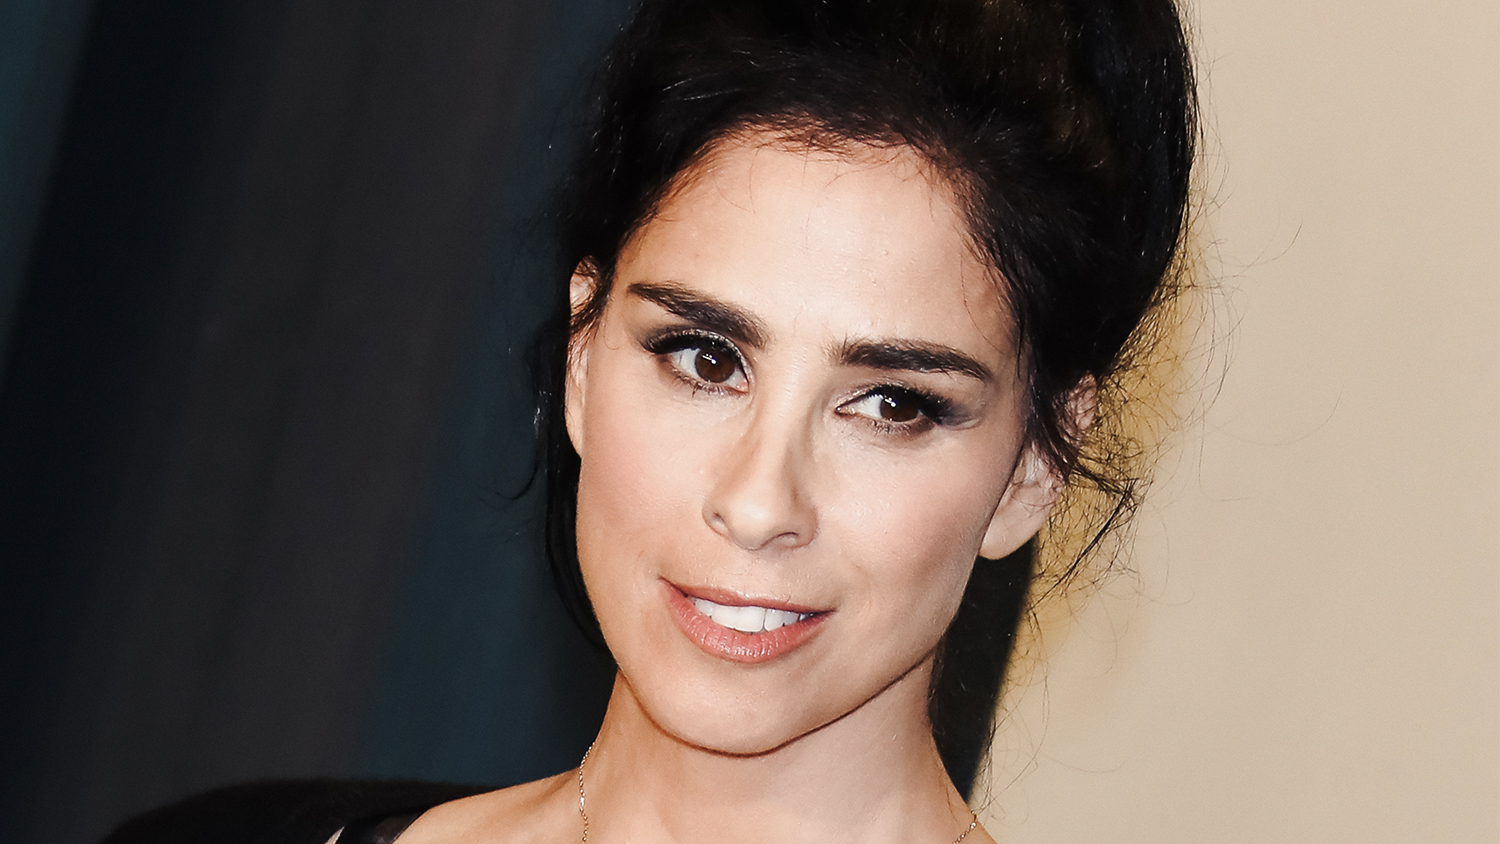 Sarah Silverman's Vegan Pledge: 'I Don't Have an Excuse' to Not Try